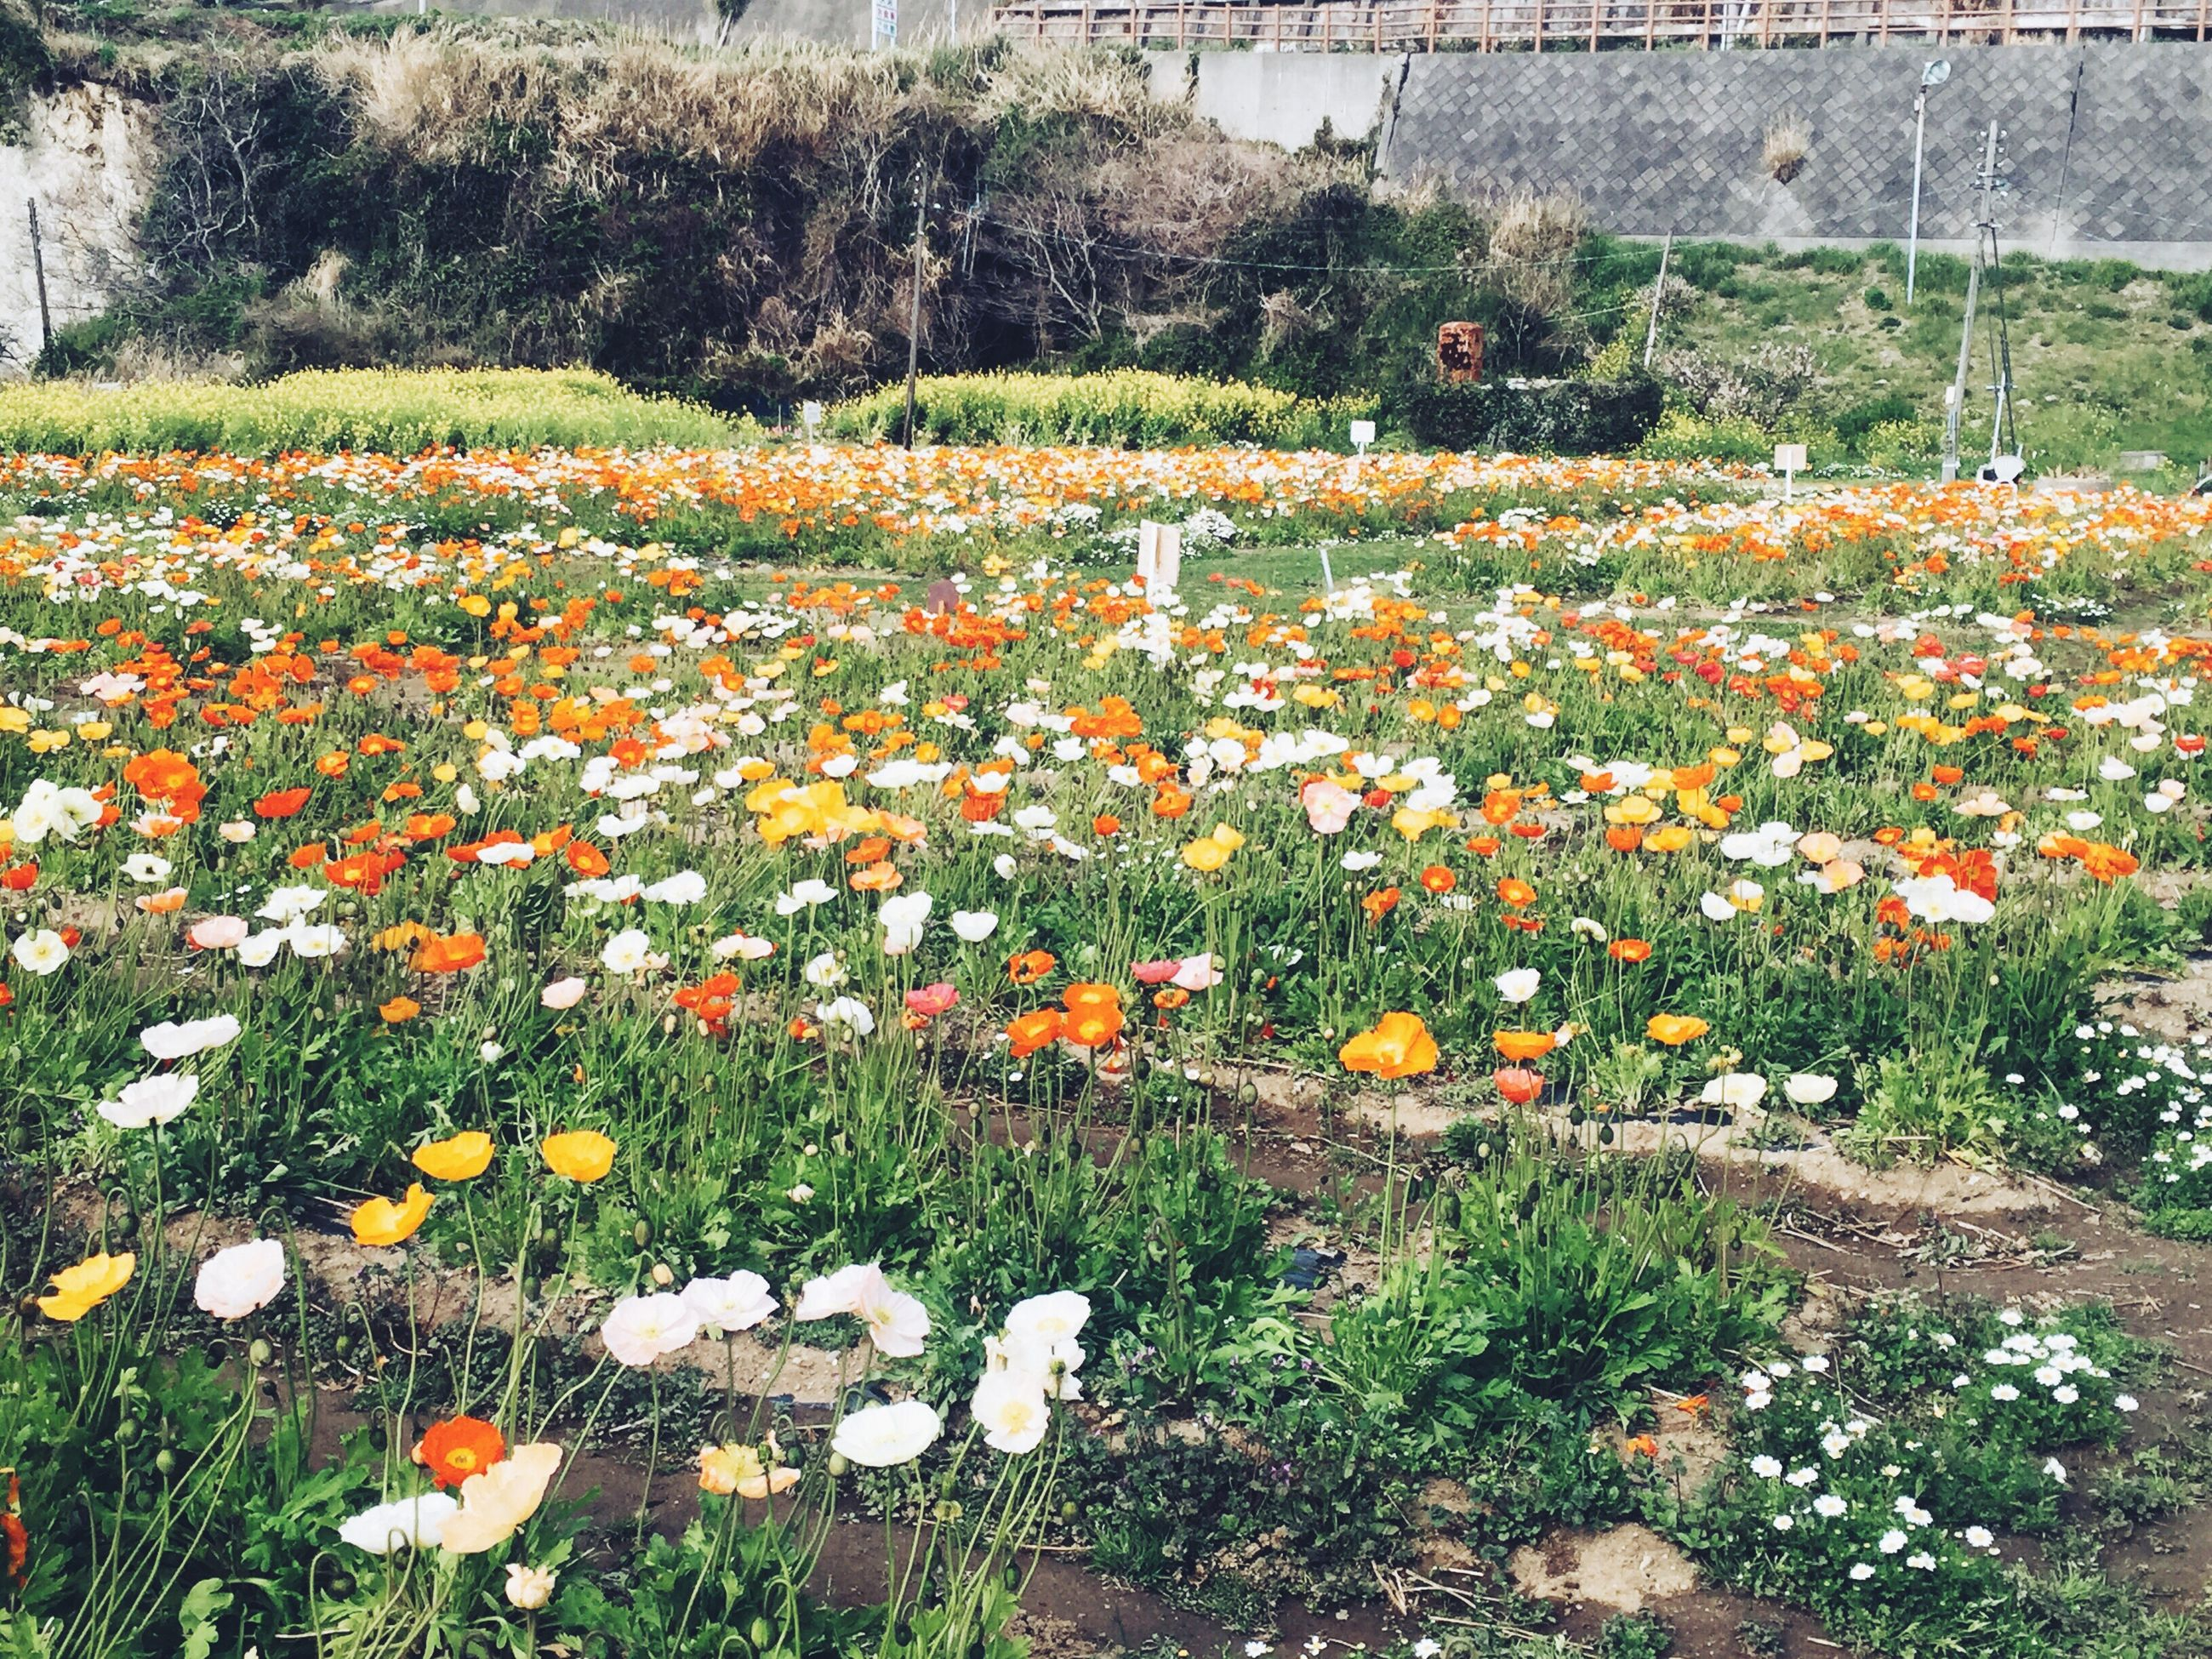 flower, growth, field, freshness, beauty in nature, fragility, nature, grass, plant, blooming, season, abundance, tranquility, flowerbed, in bloom, petal, landscape, tranquil scene, springtime, wildflower